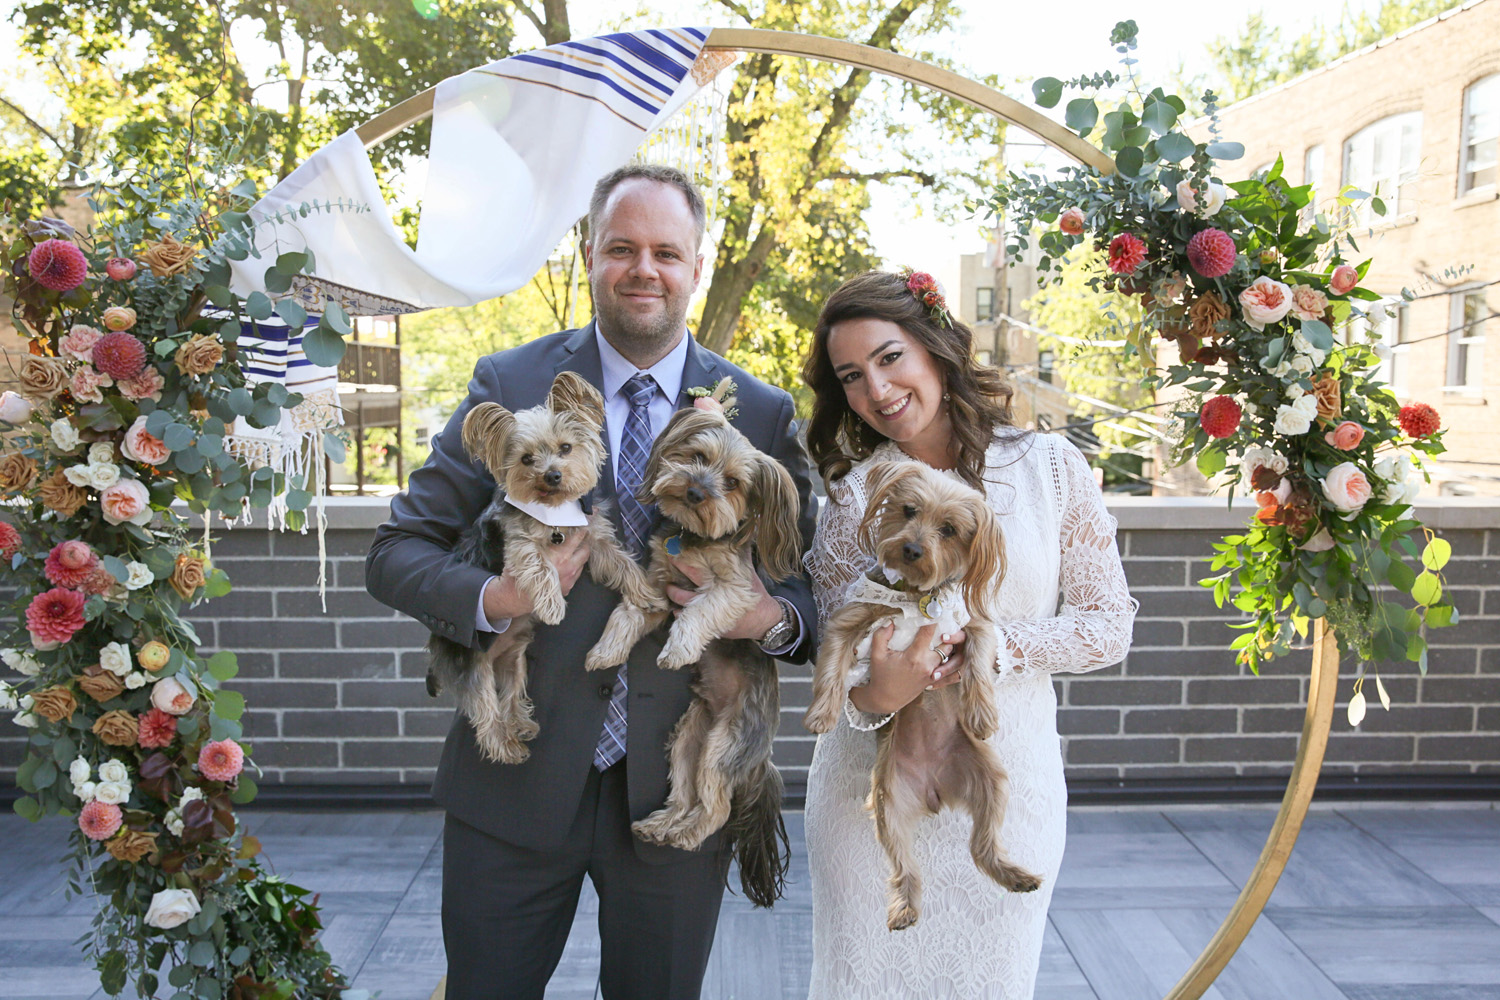 bride and groom standing under jewish chuppah moon arch with dog flower girls